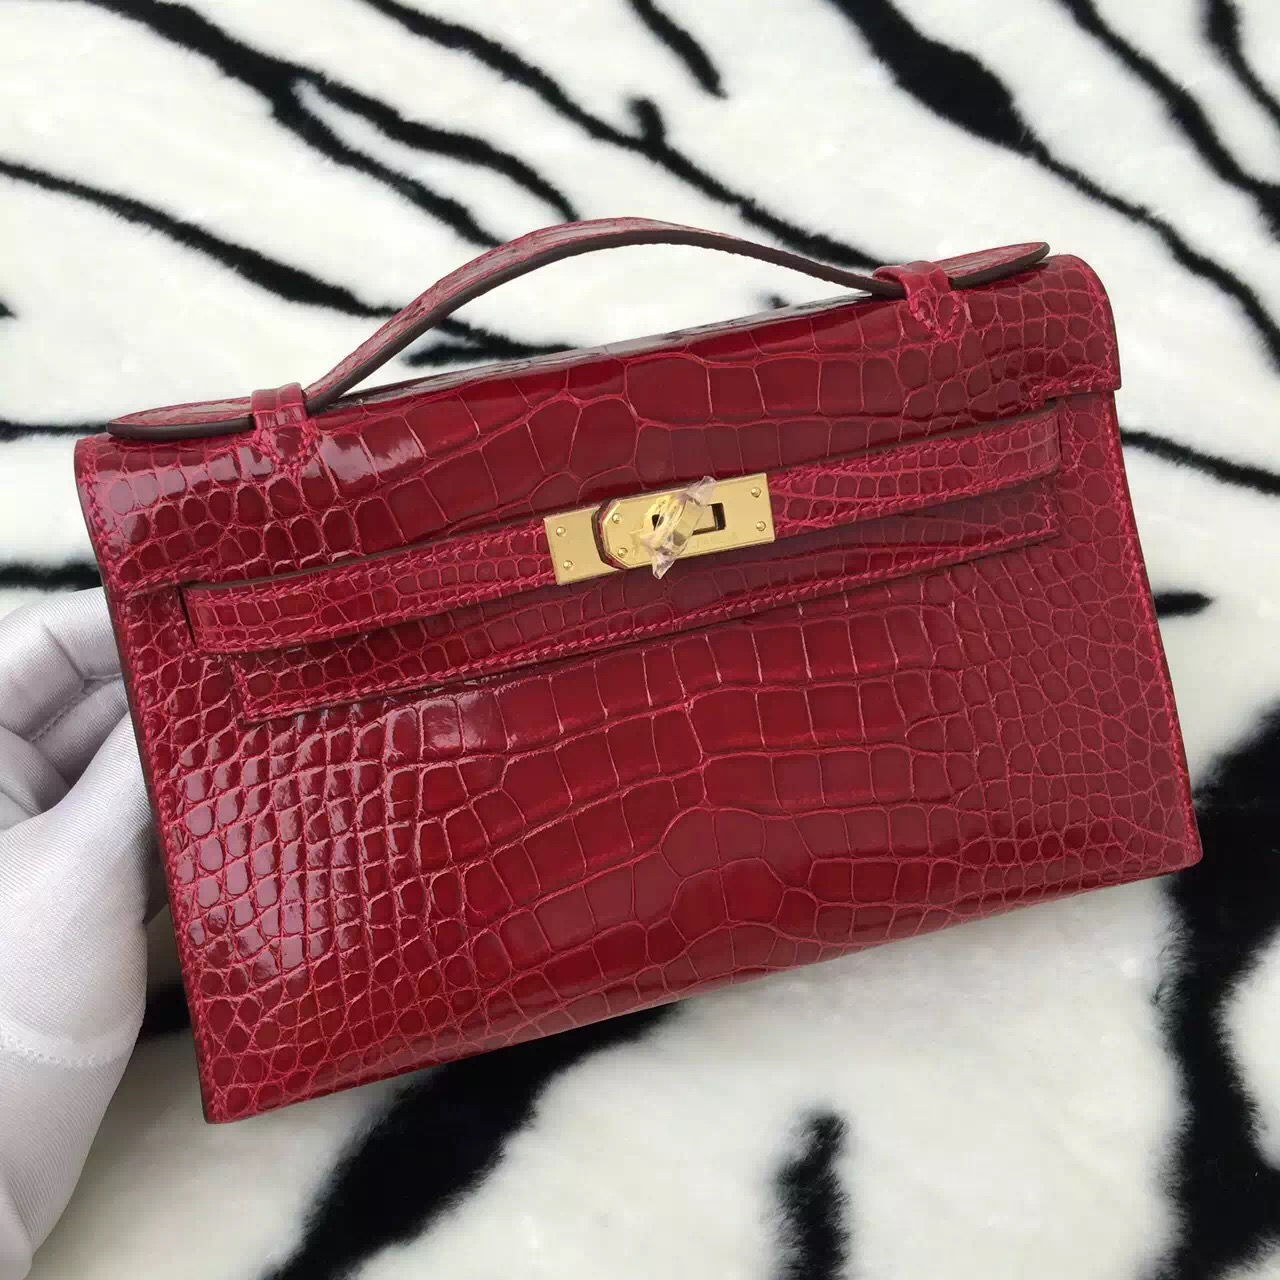 New Fashion Hermes Crocodile Skin Mini Kelly Bag Women\u0026#39;s Handbag ...